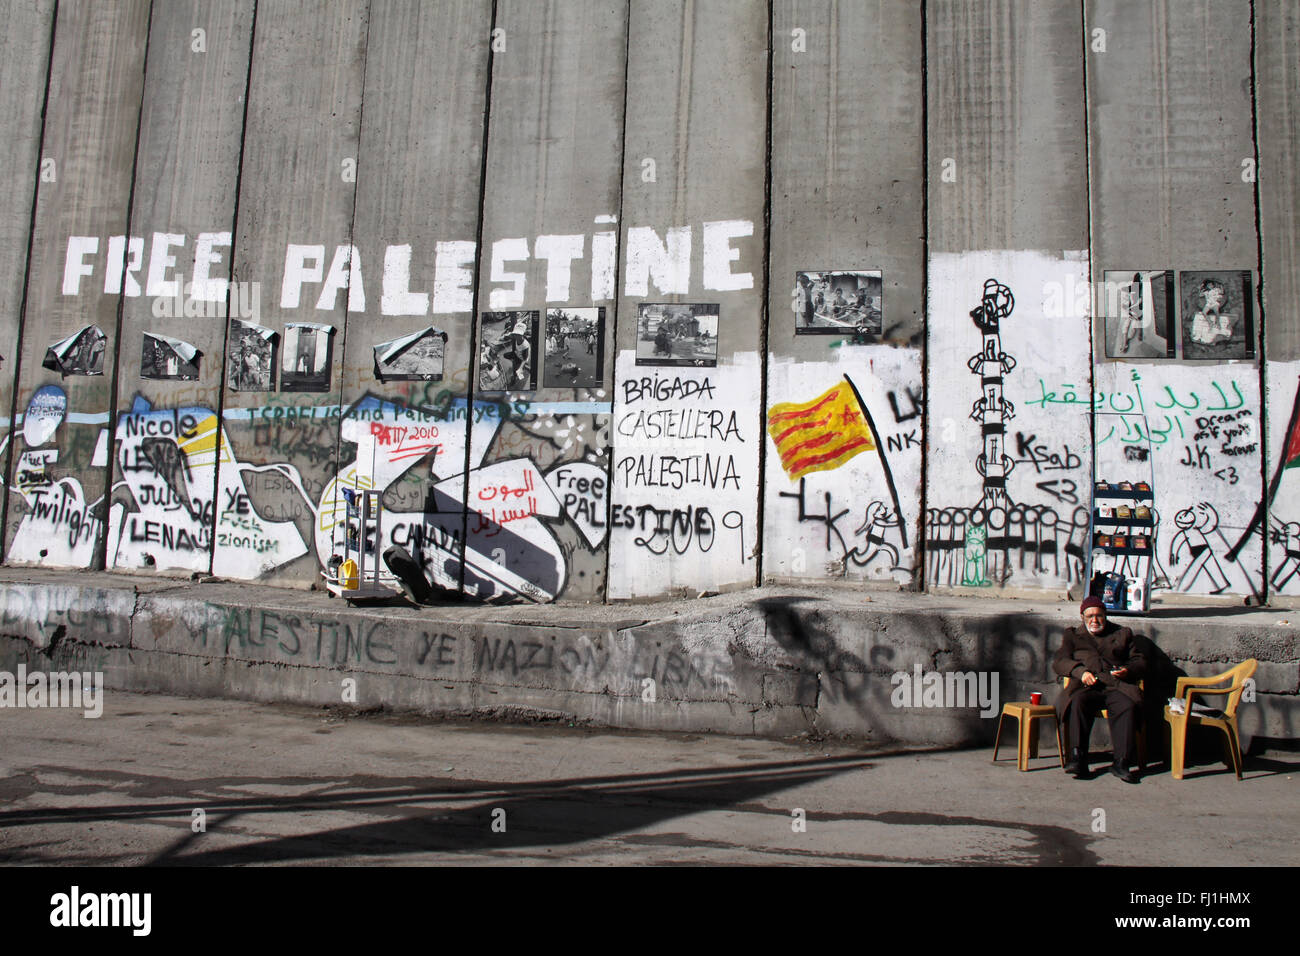 'Free Palestine' painting on the separation wall - Bethlehem checkpoint 300 and separation  wall - Stock Image